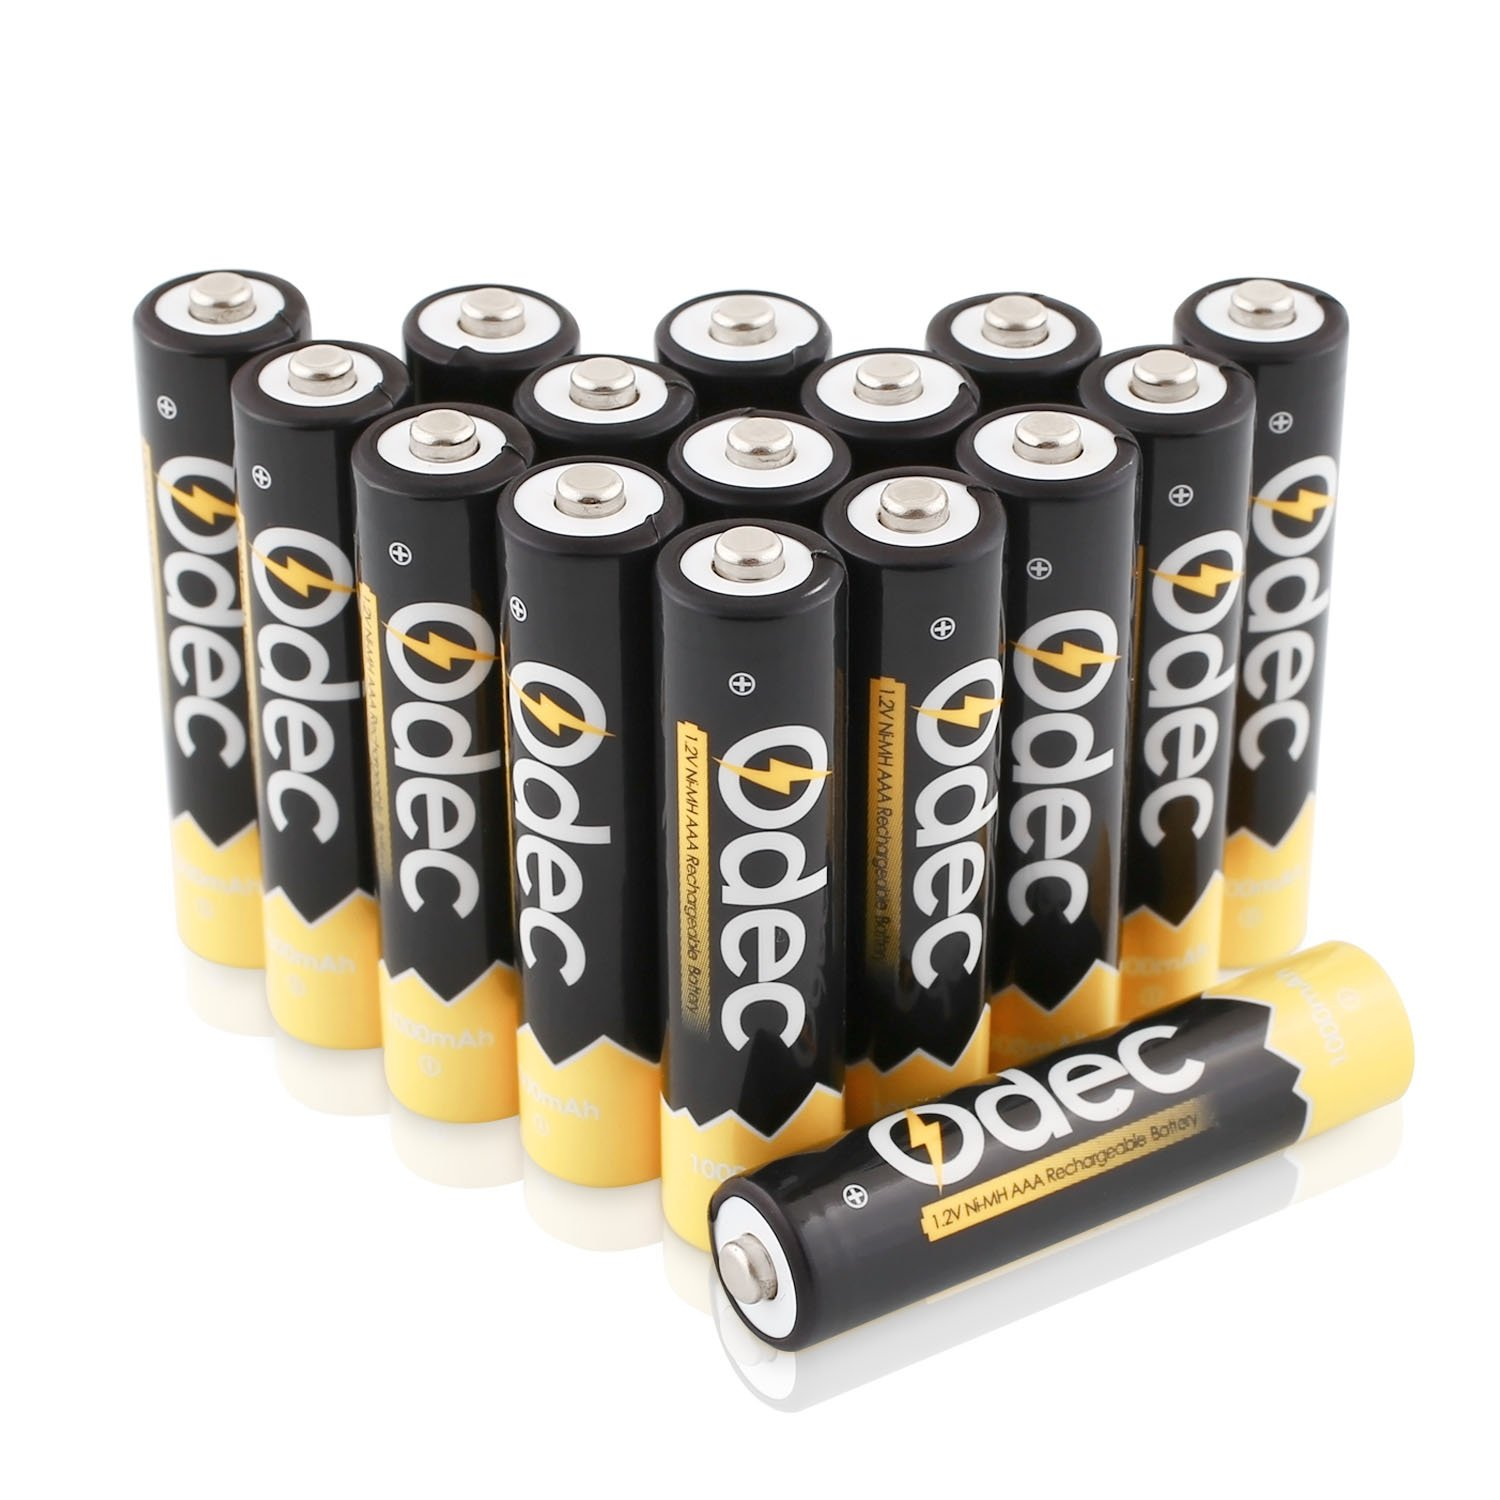 Odec AAA Rechargeable Batteries, 1000mAh NiMH Deep Cycle Battery Pack Low Self Discharge with Case- 16 Pack